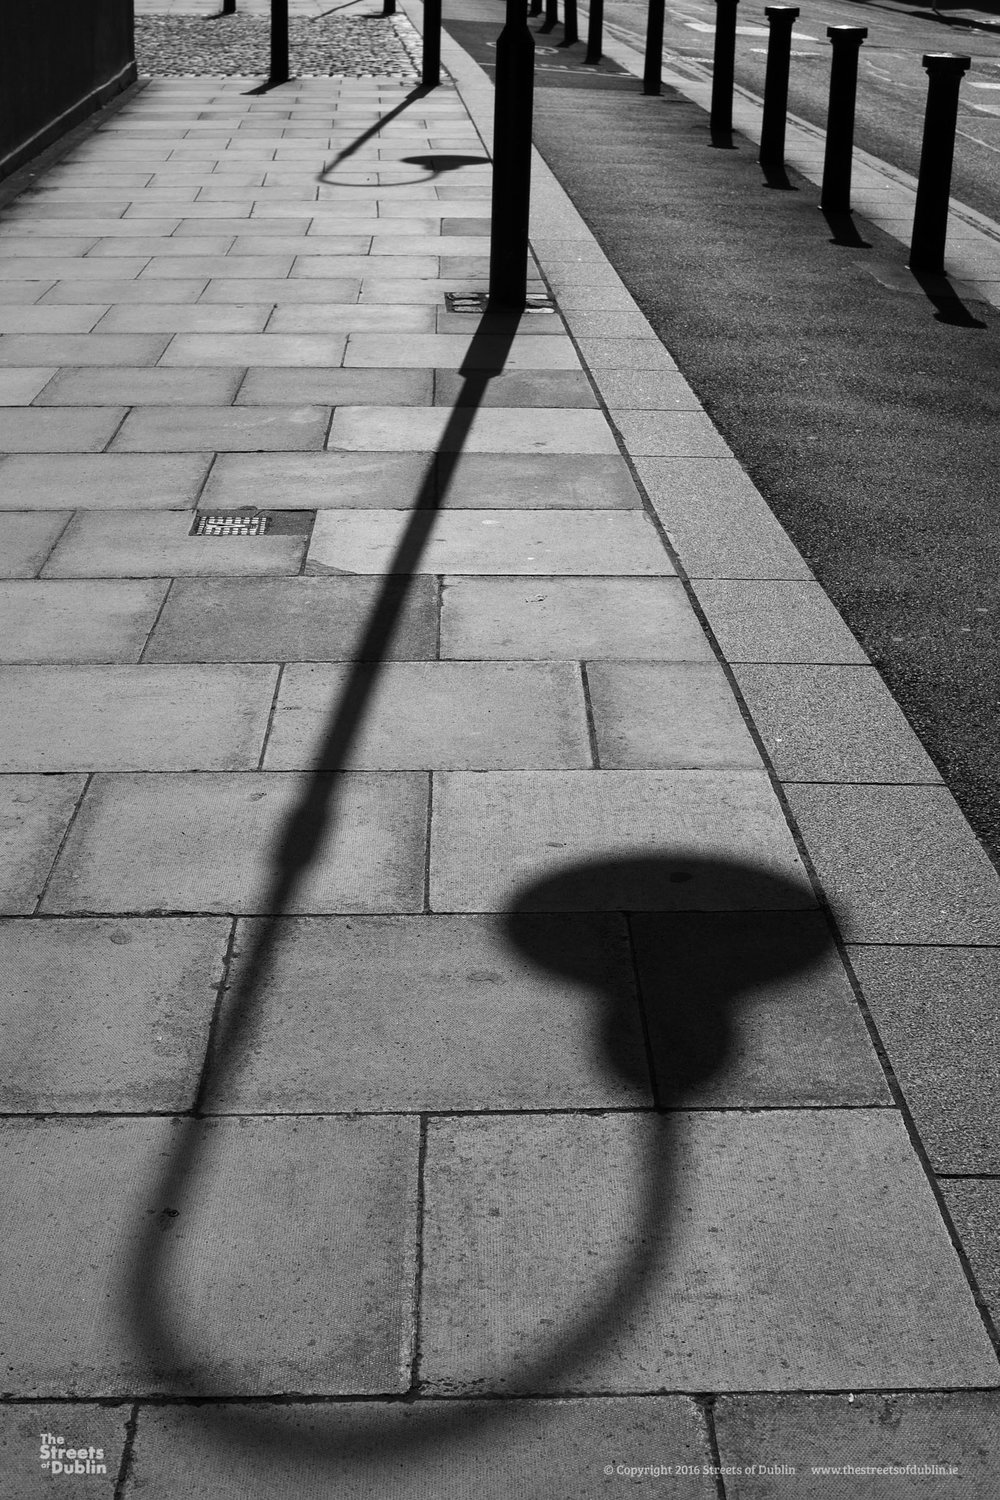 Shadows of a street lamp on paving